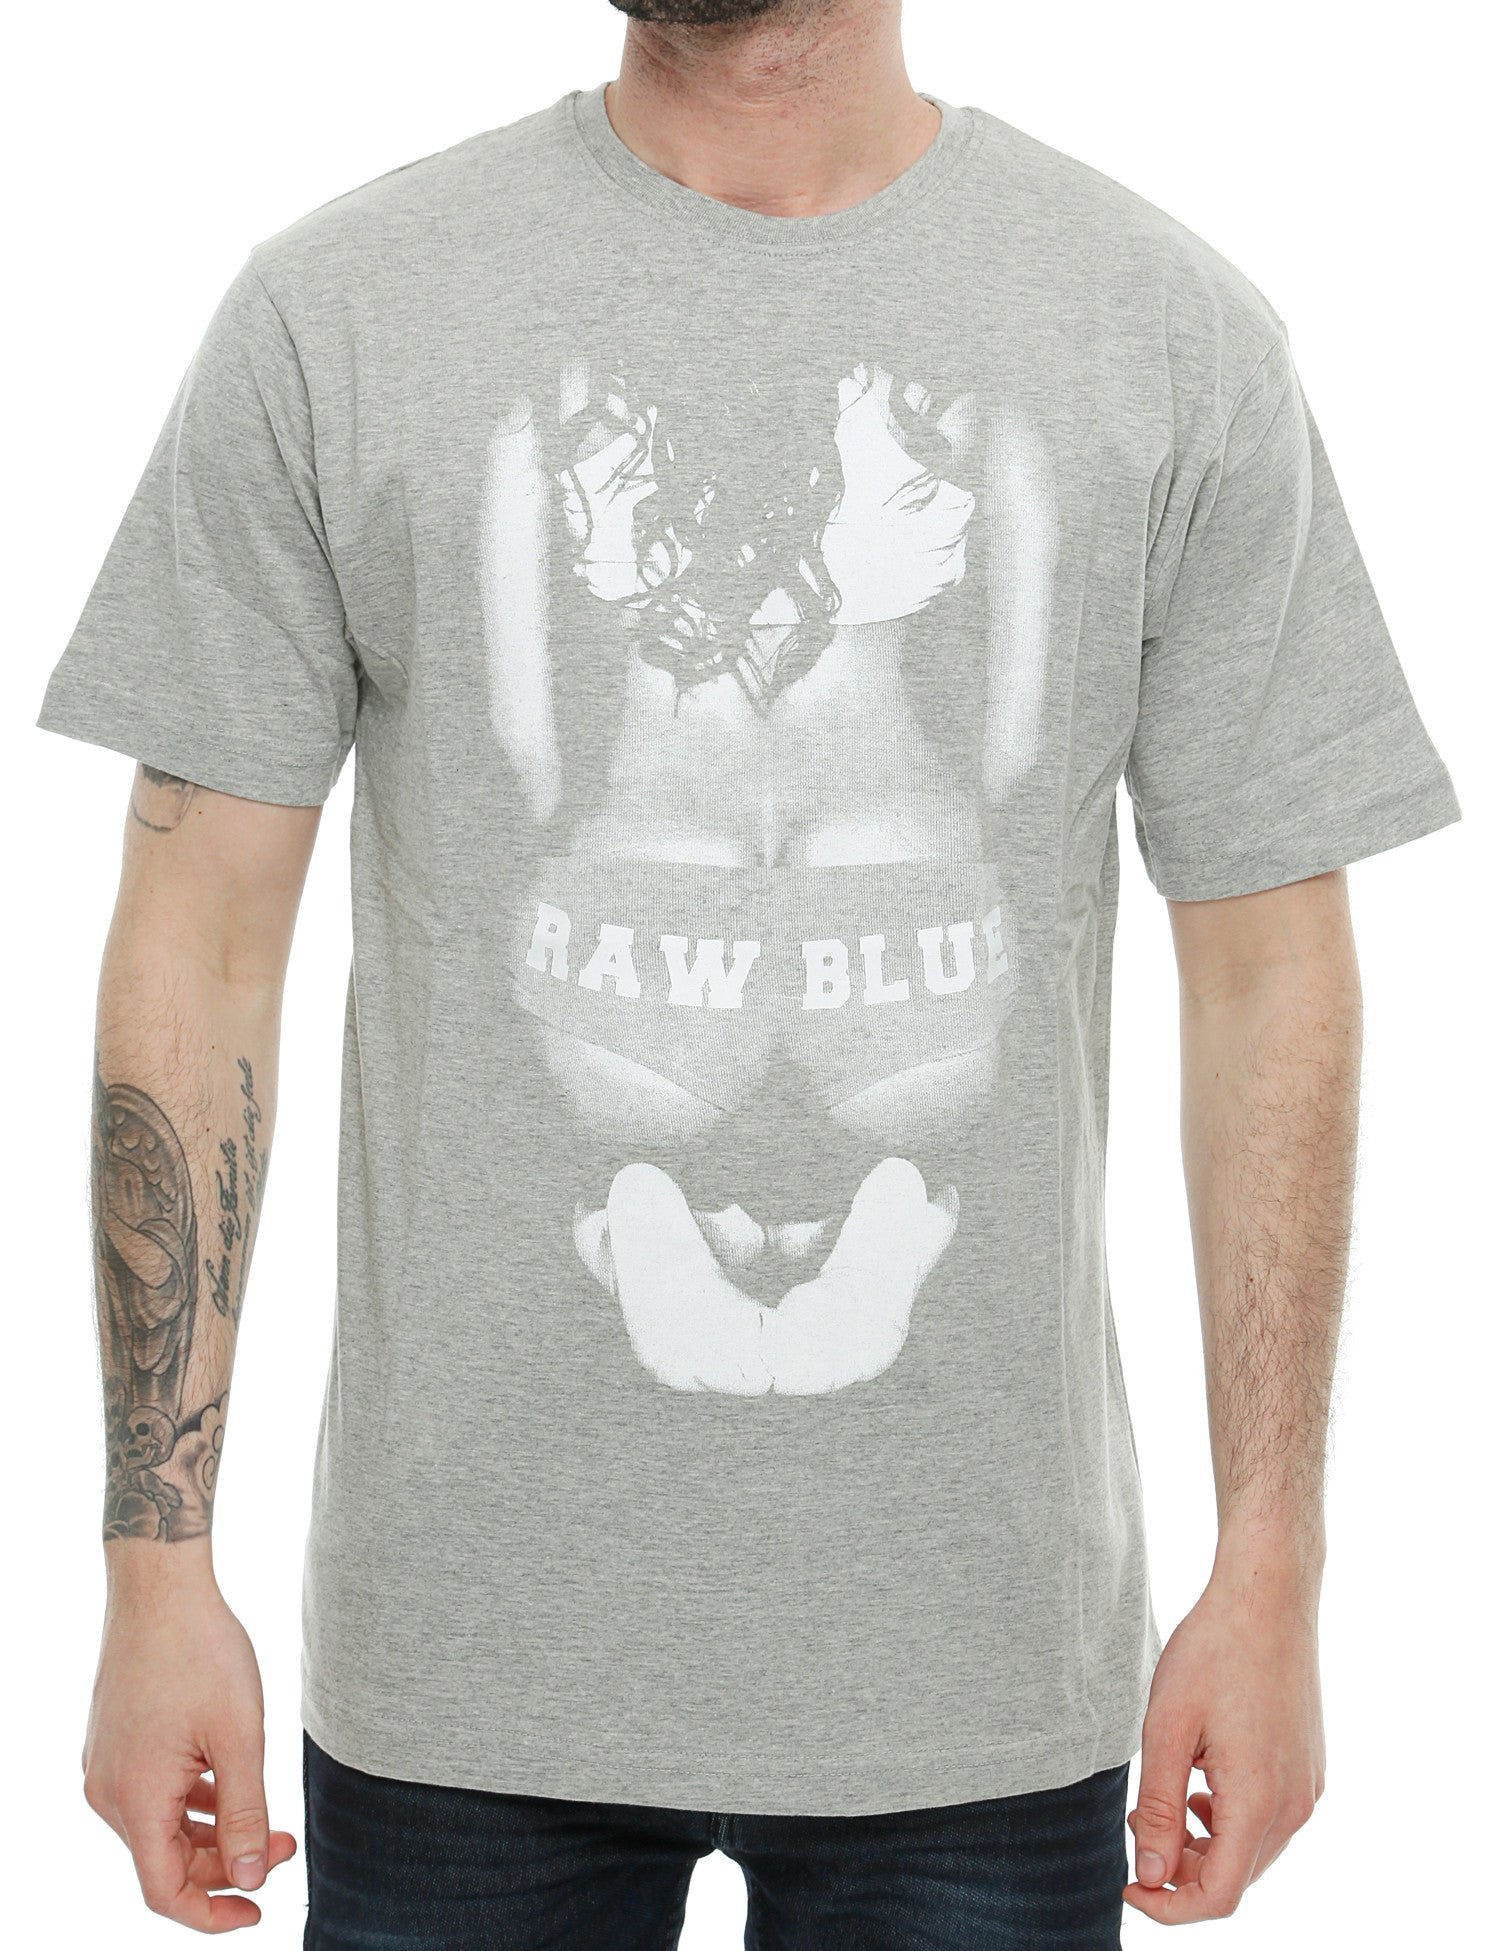 Raw Blue Big Butt T-Shirt RB16-002 Grey